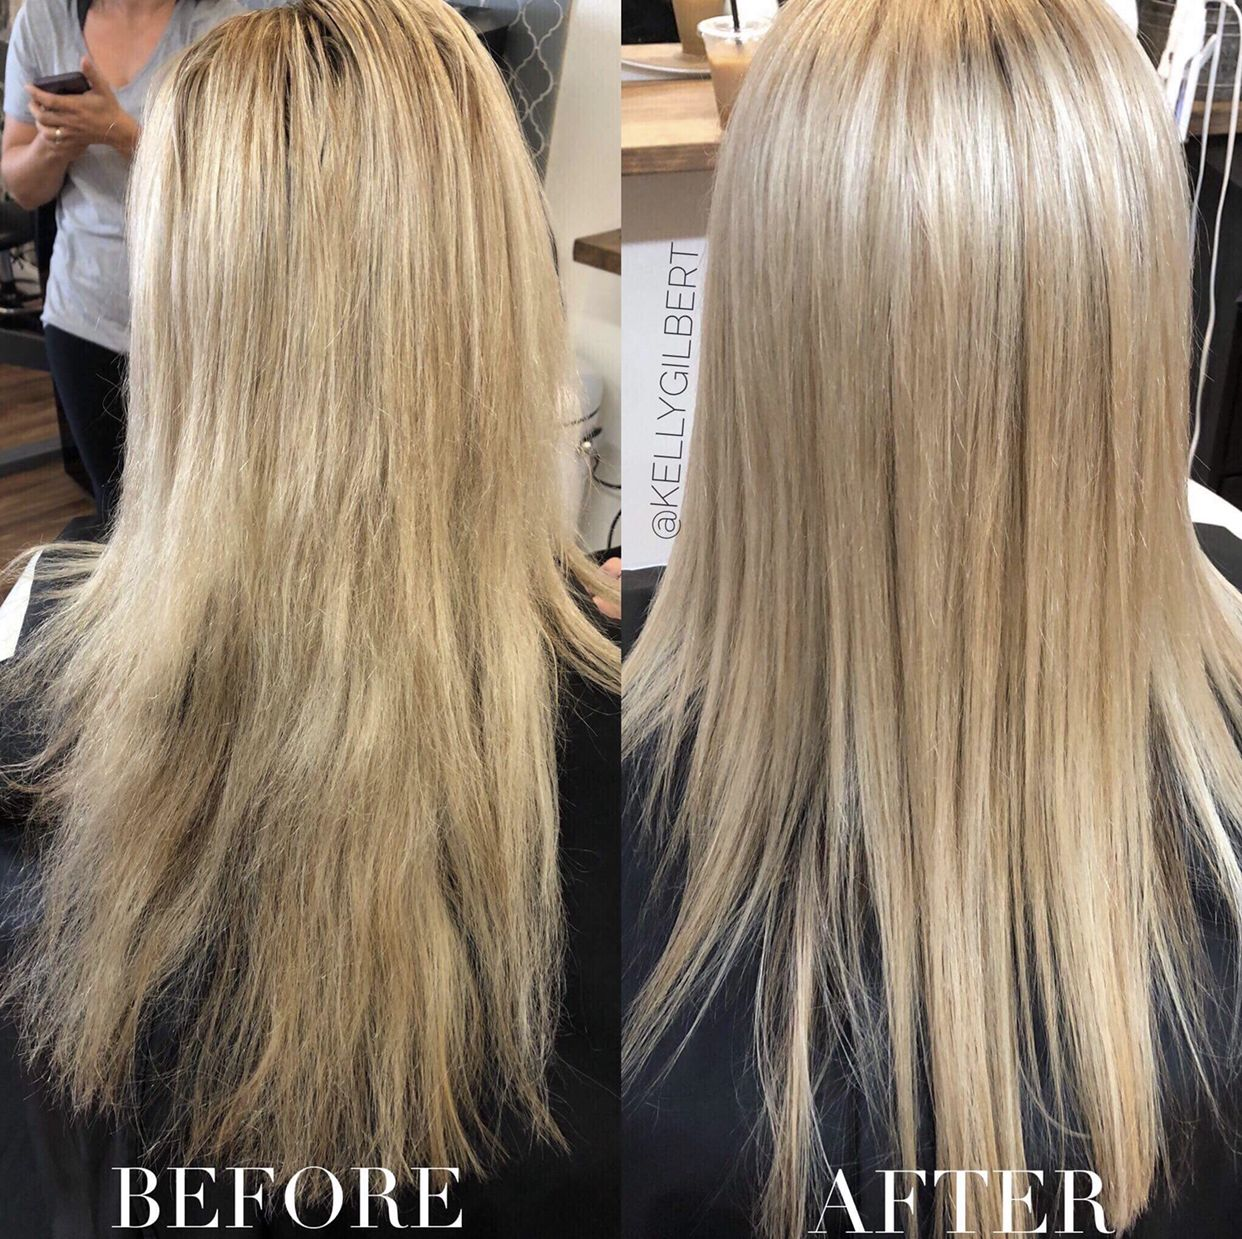 Restructuring Line Before And After Monathair Monathaircare